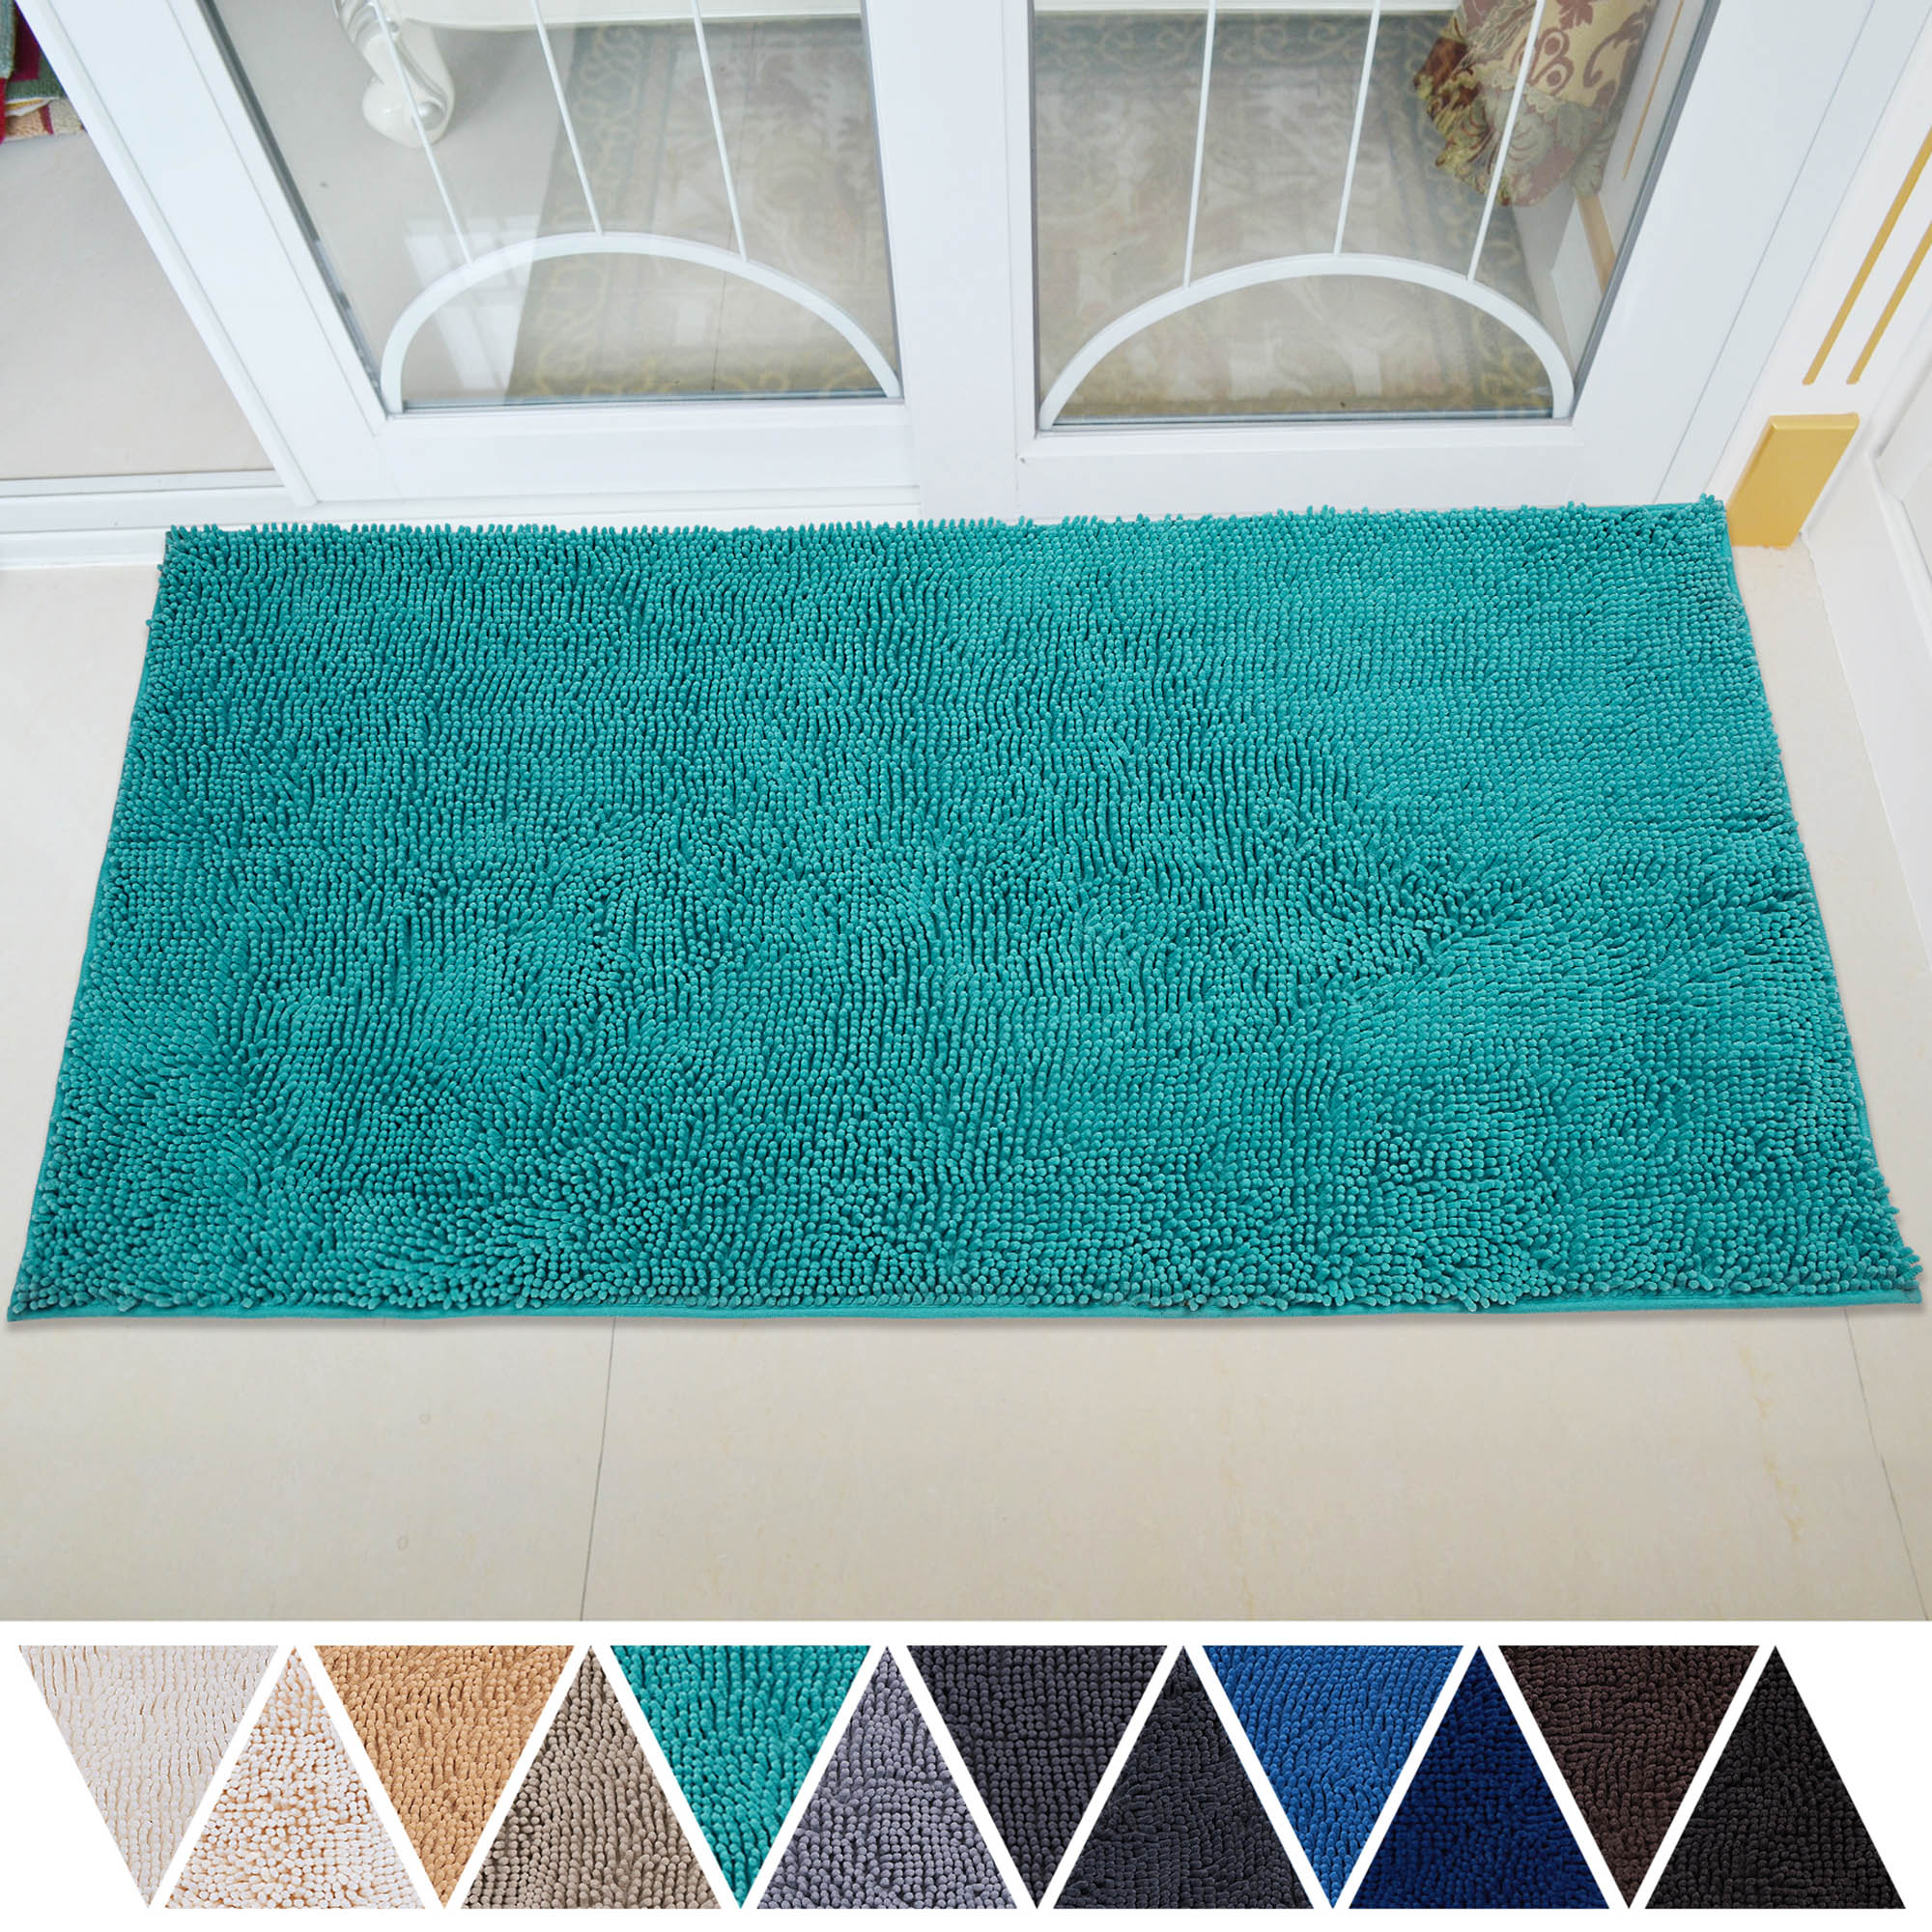 Deartown Non Slip Thick Microfiber Bathroom Rugs Machine Washable Bath Mats With Water Absorbent 31x59 Inches Turquoise Walmart Com Walmart Com